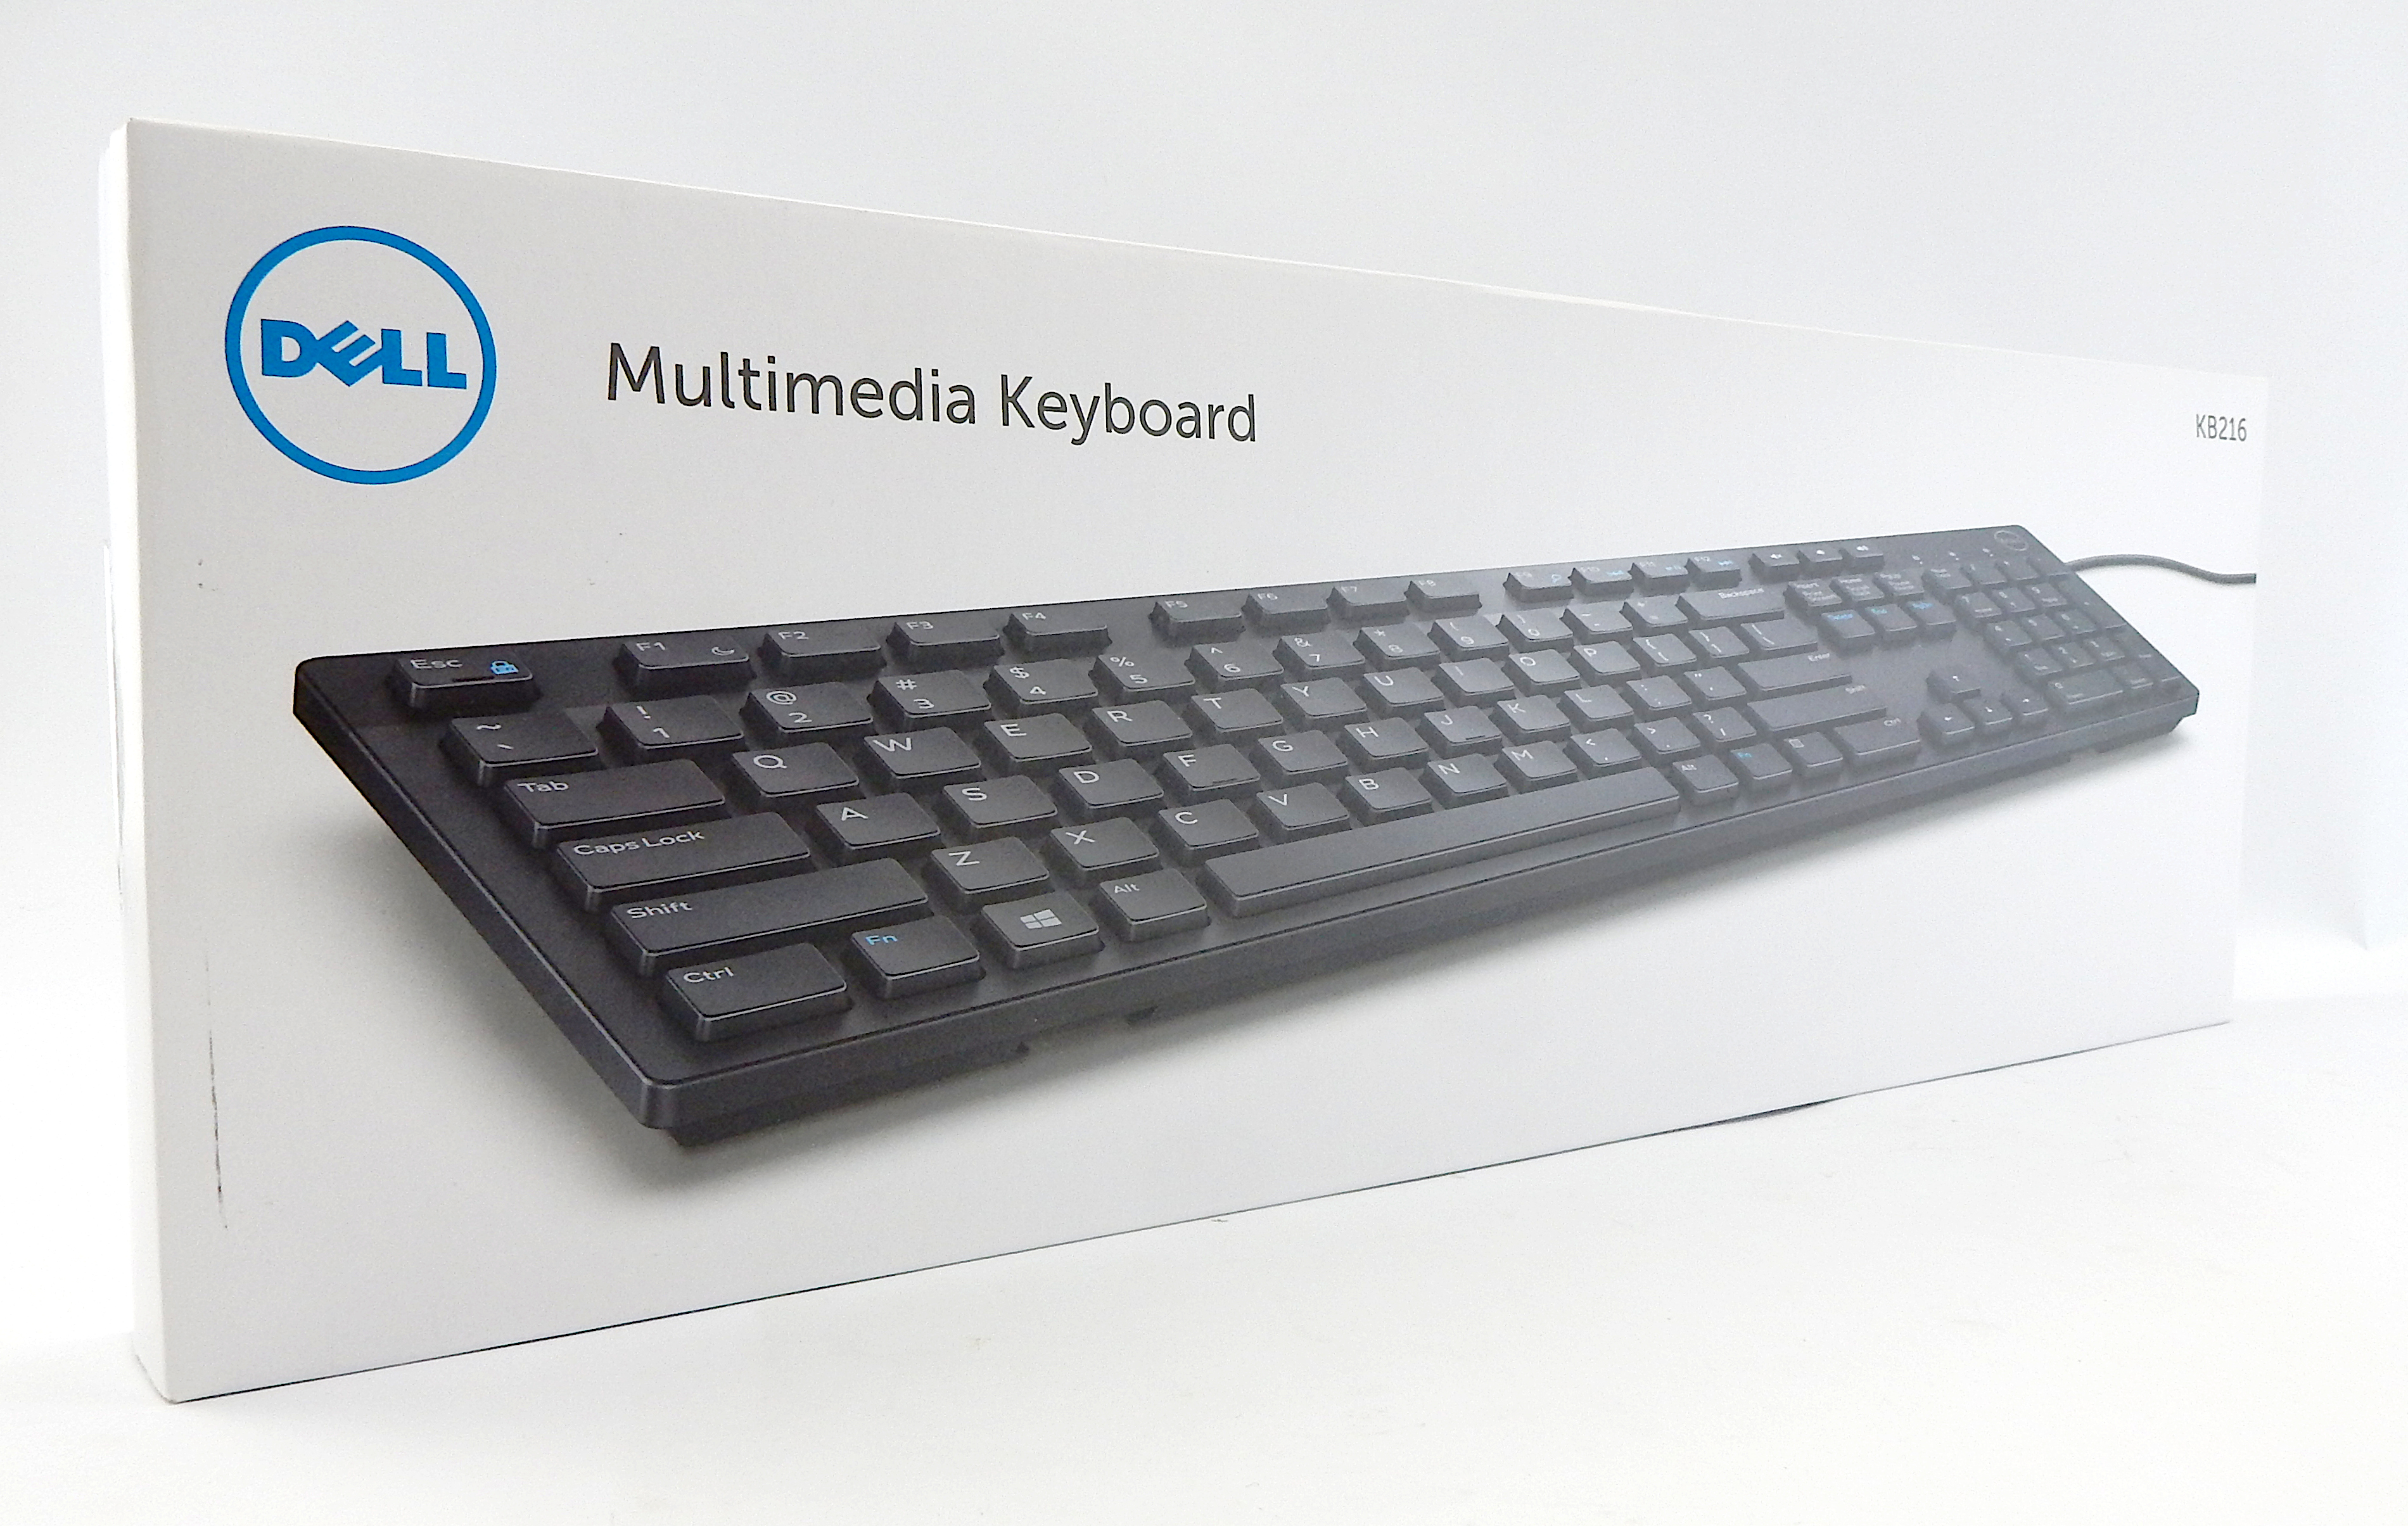 Dell JD2VN / RX6RM USB Wired QWERTY Keyboard, Black, UK Layout - KB216-BK-UK